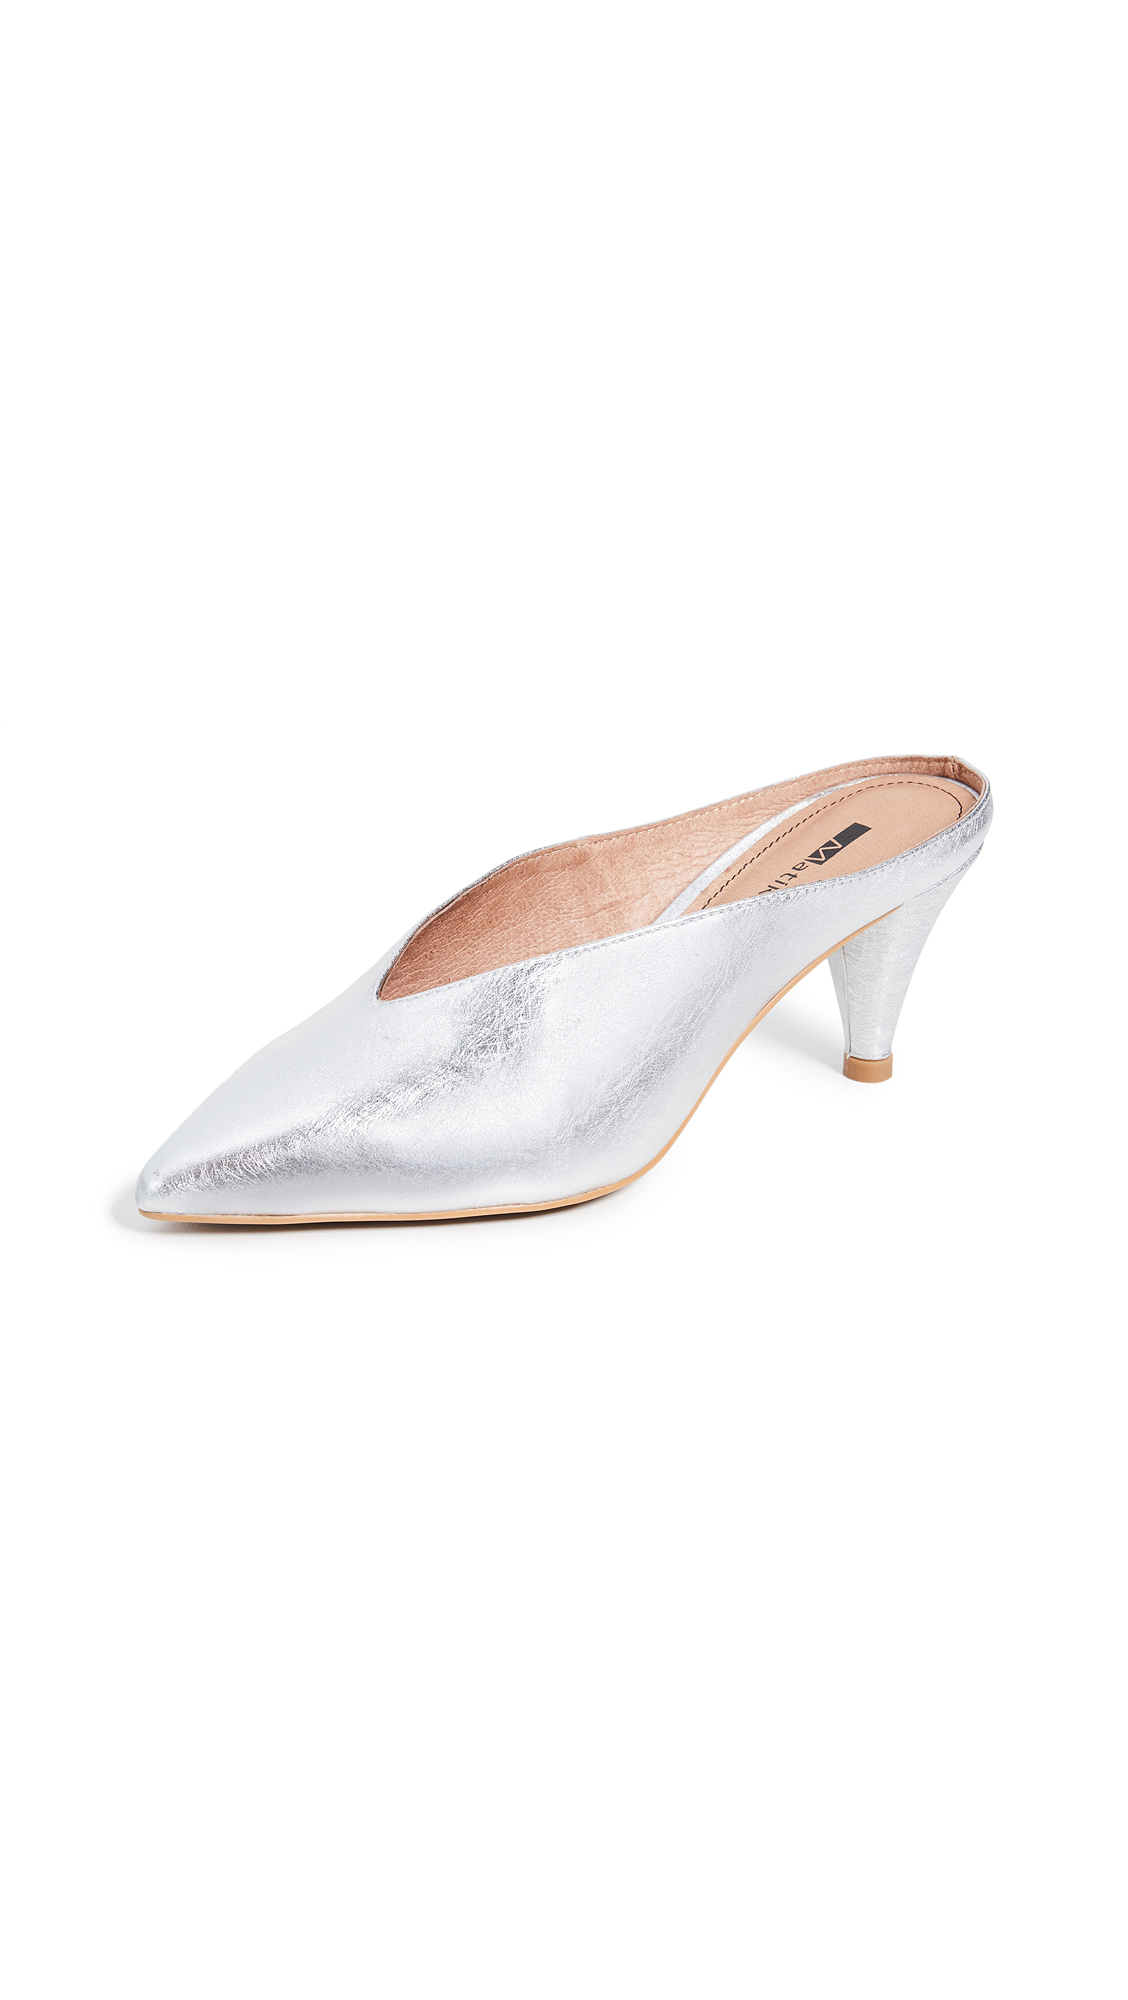 Matiko Lisa Point Toe Mules - Silver